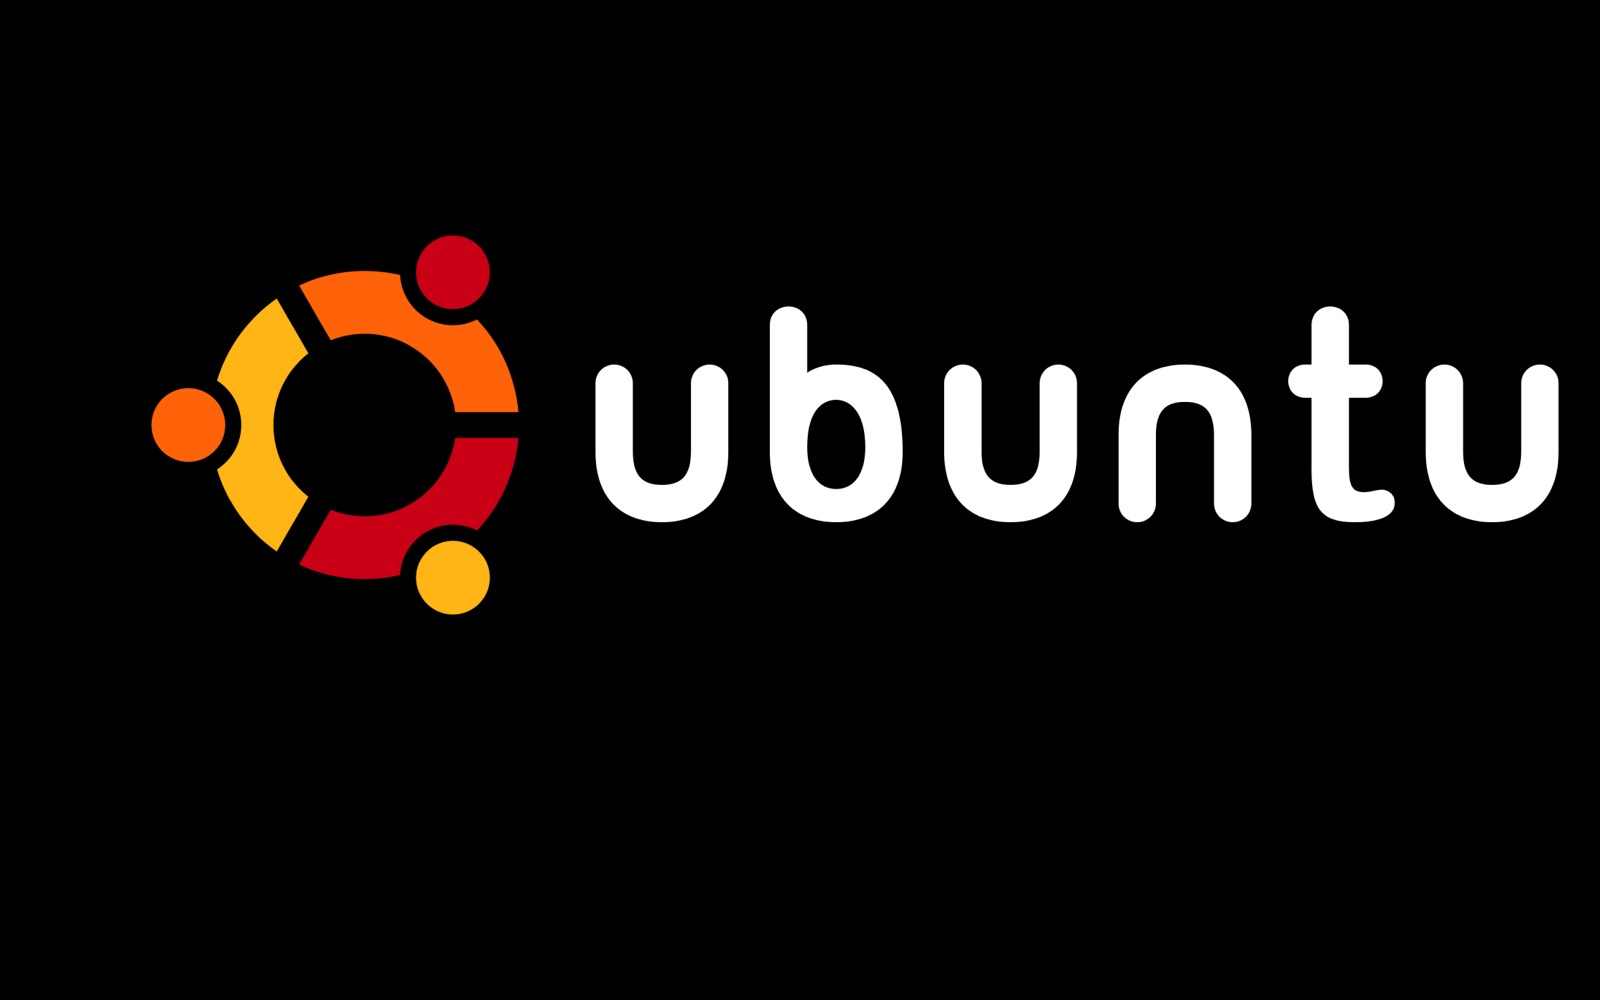 Ubuntu Black And Pink Abstract Wallpaper Wallpaper